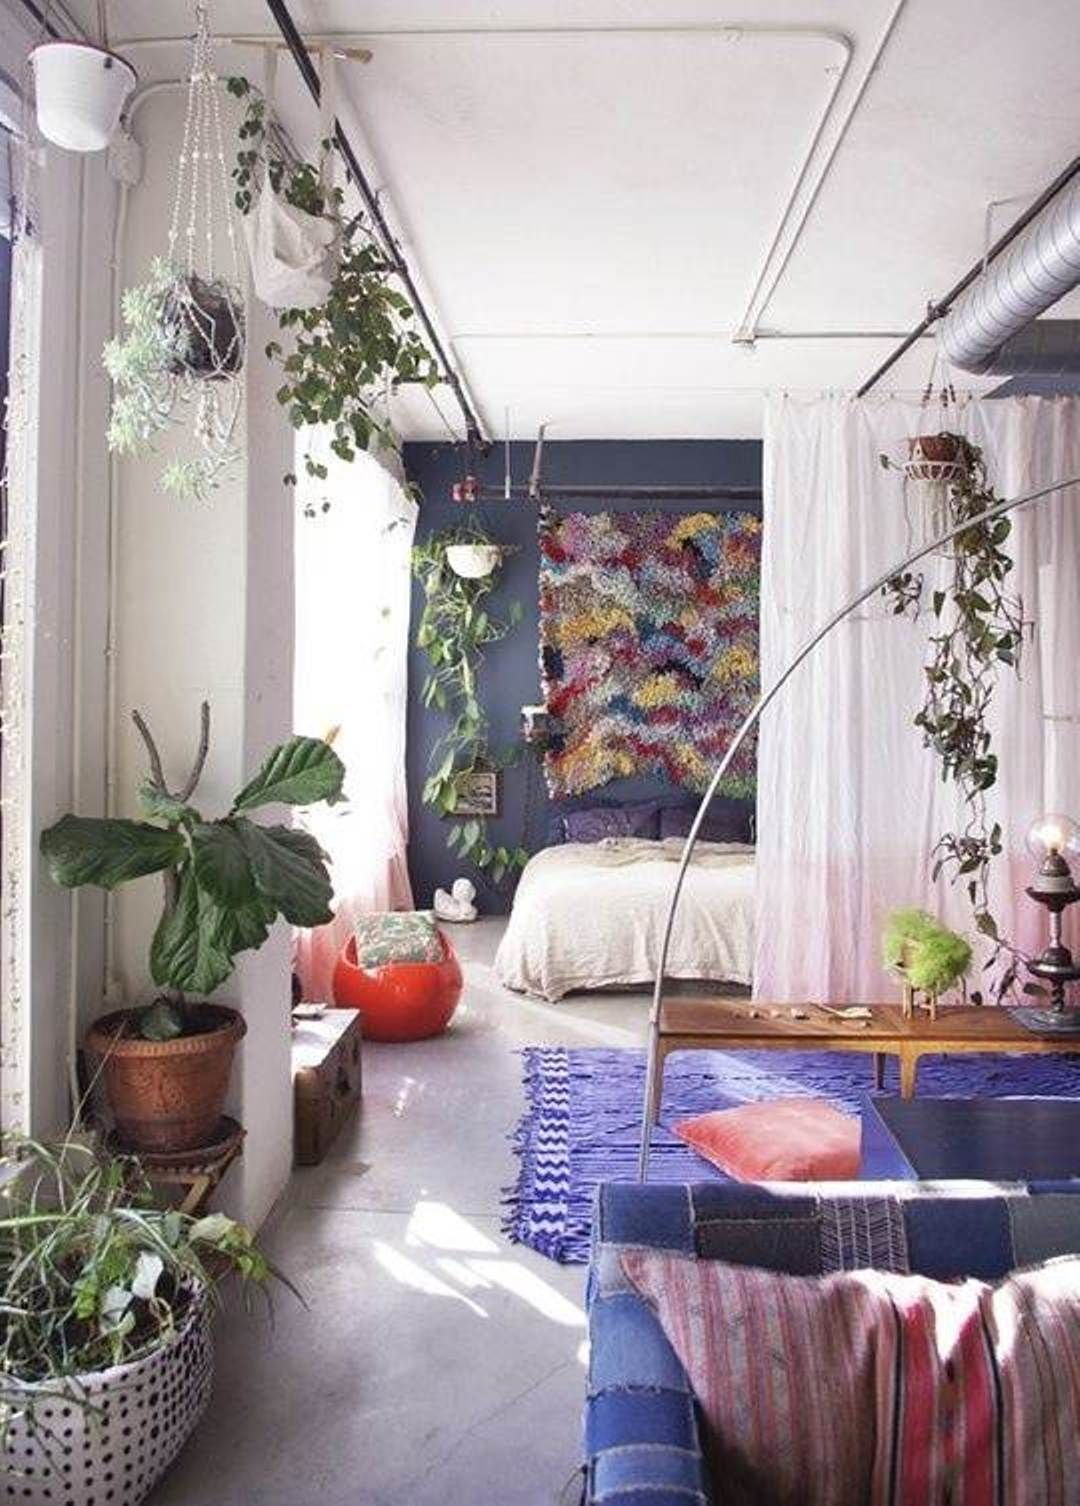 Plants small apartment decorating ideas simple small apartment decorating ideas gallery repostudio org